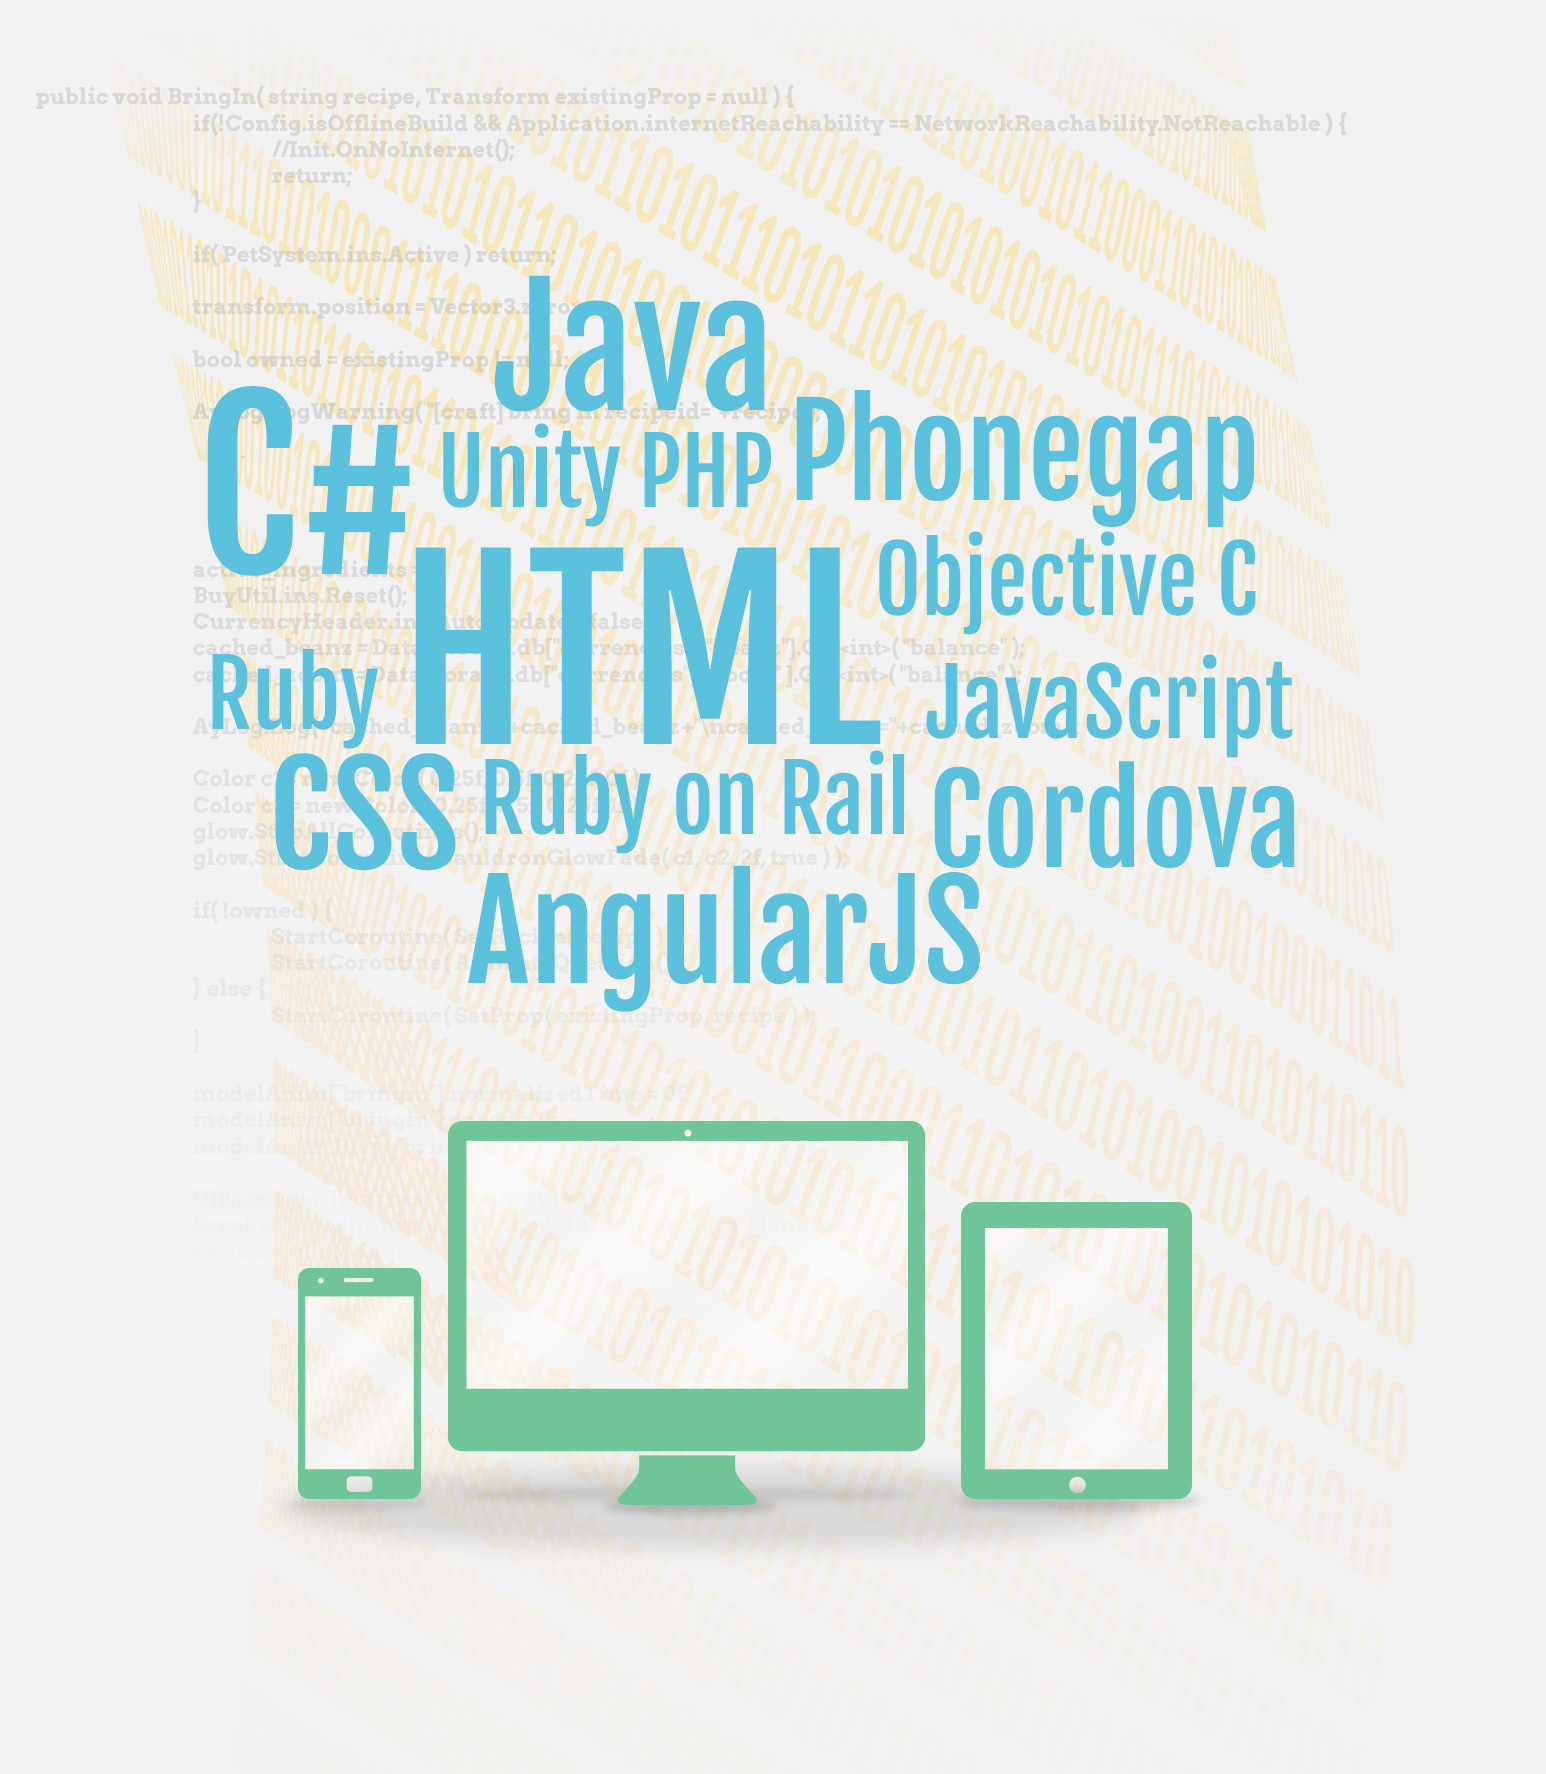 mobile, health, services, iOS, Ayogo, HTML, engineers